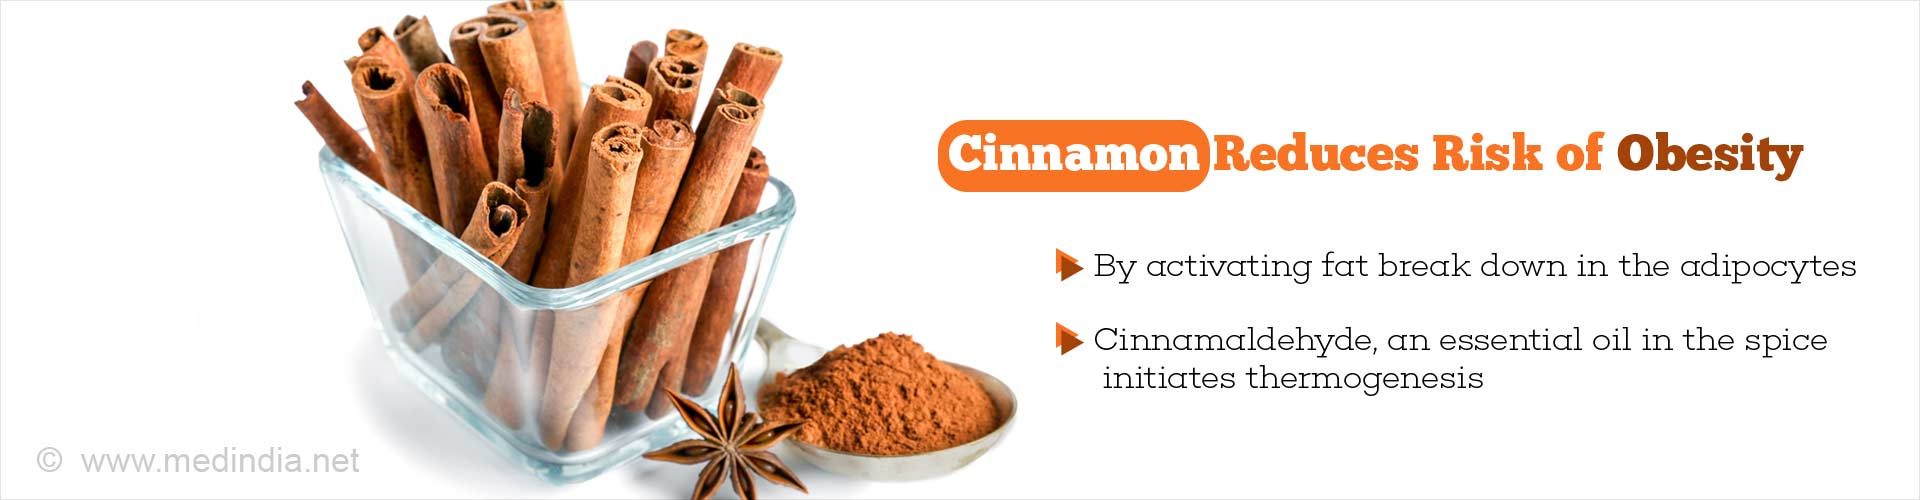 Cinnamon Fights Obesity By Activating Fat Breakdown